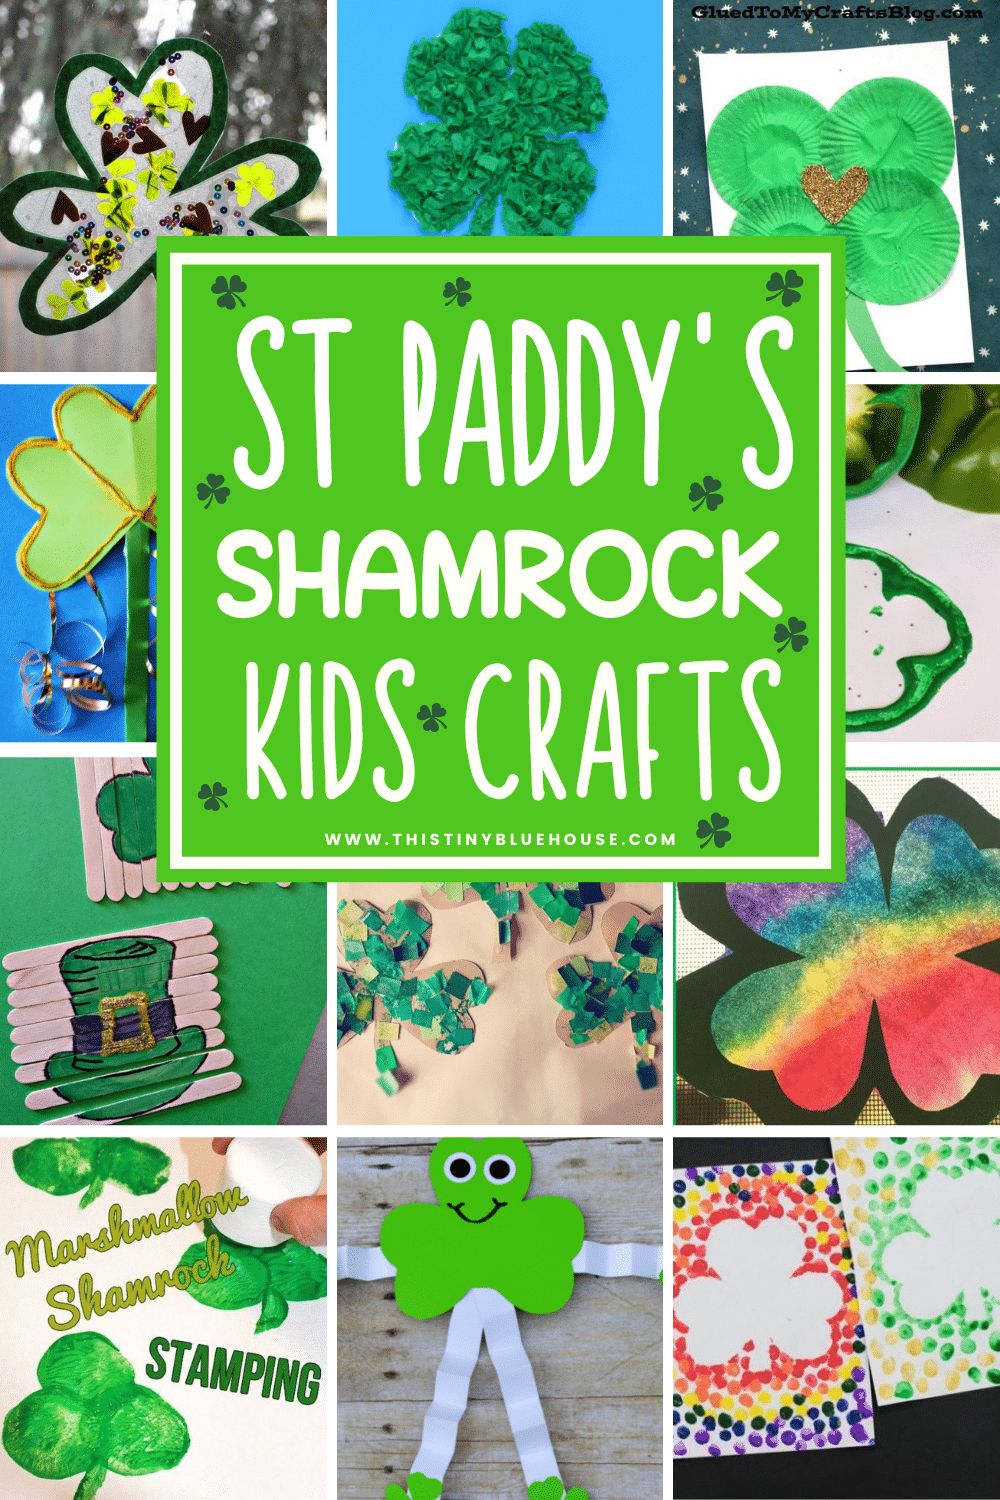 40 quick and easy festive Shamrock crafts for kids perfect for welcoming and celebrating St. Patrick's day this year.  Versatile and great for kids of all ages these fun Shamrock crafts are a fun festive screen free activity to celebrate St. Patrick's day.